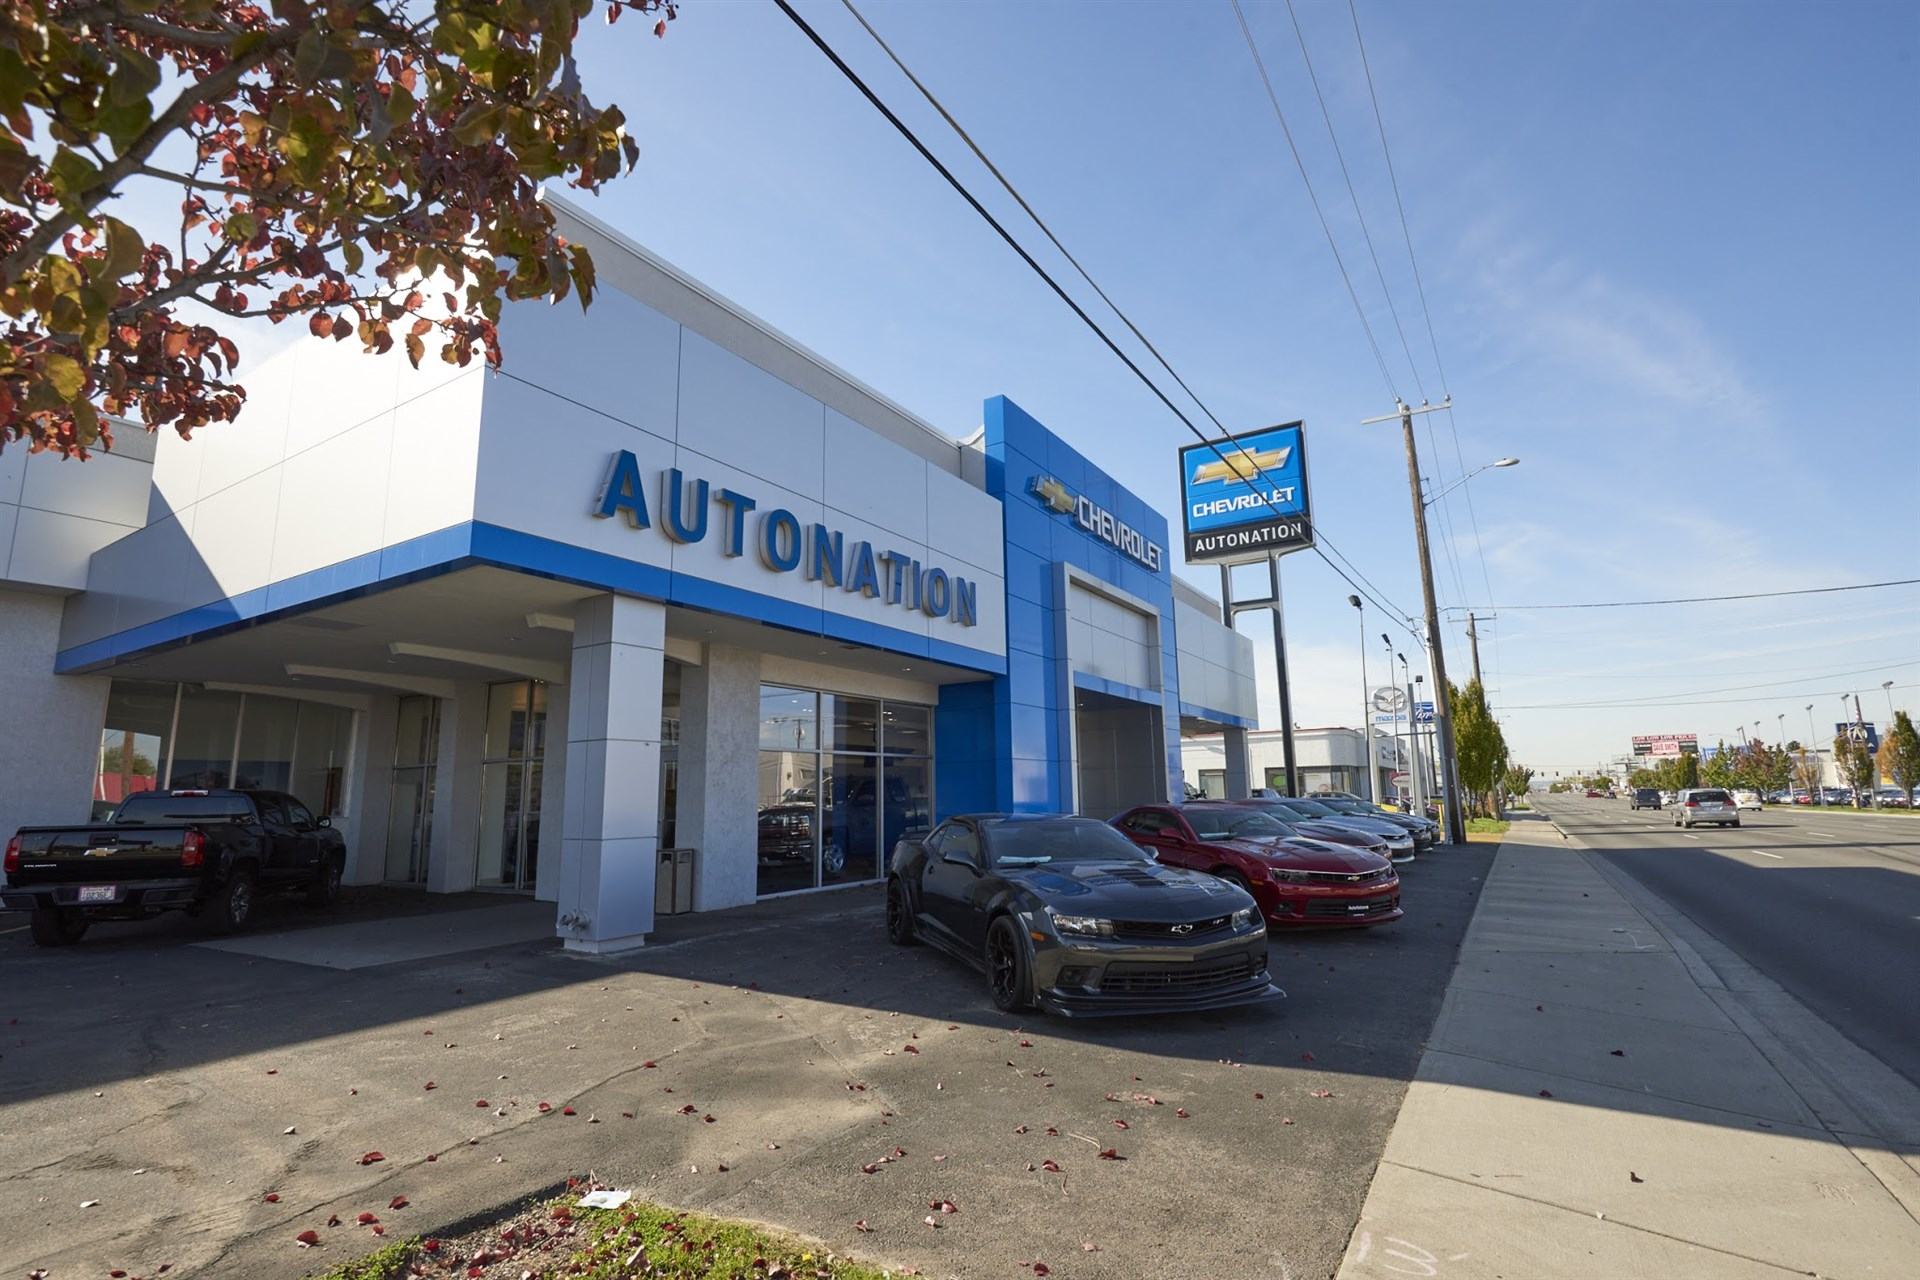 Autonation Chevrolet Spokane Valley Chevrolet Car Service Center In Spokane Washington